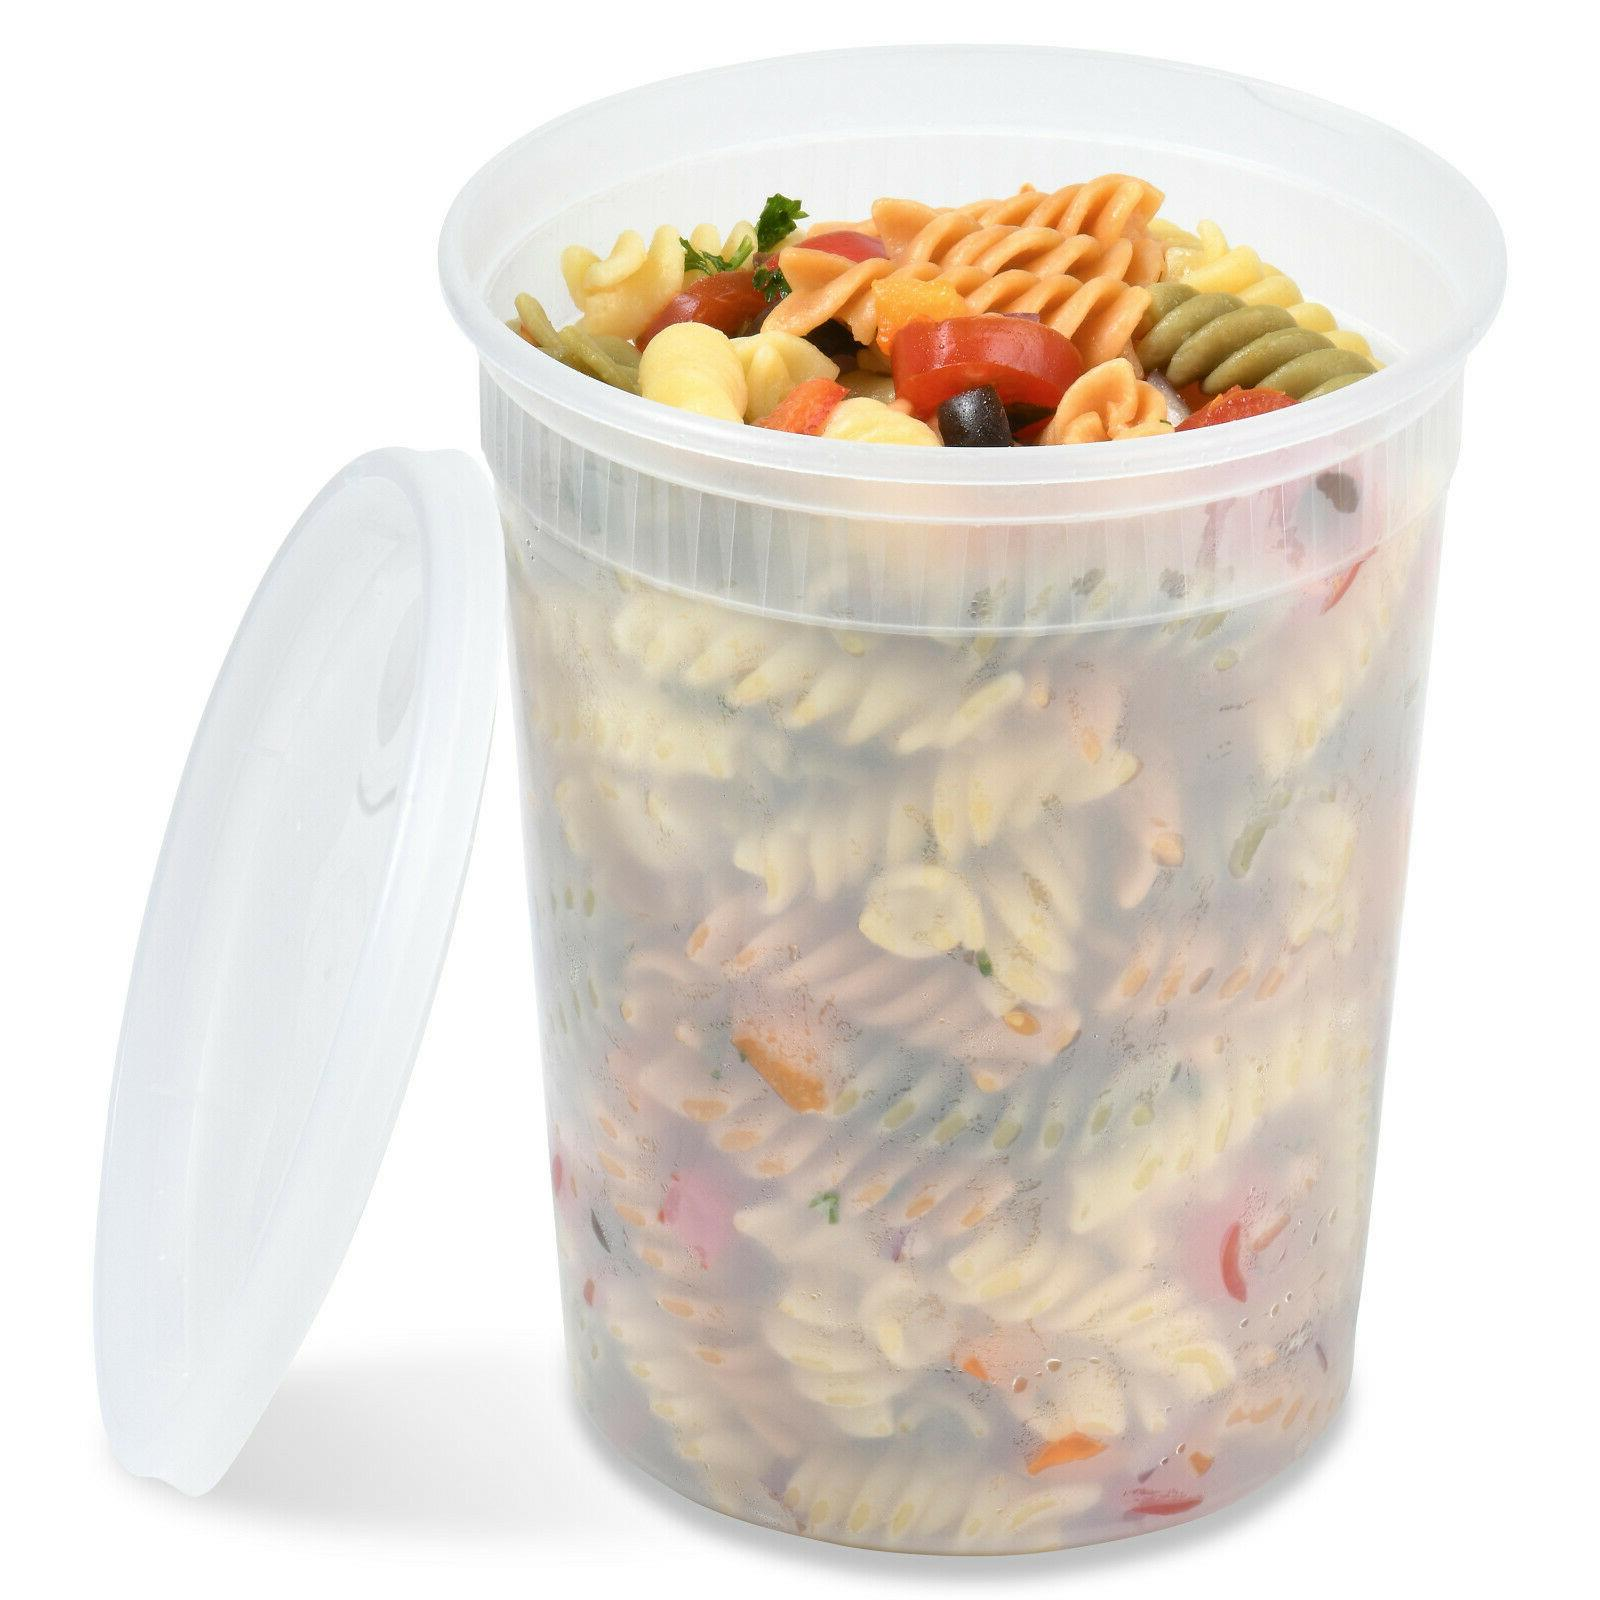 16 or 32 oz Heavy Plastic Deli/Soup Containers with Lids, Made